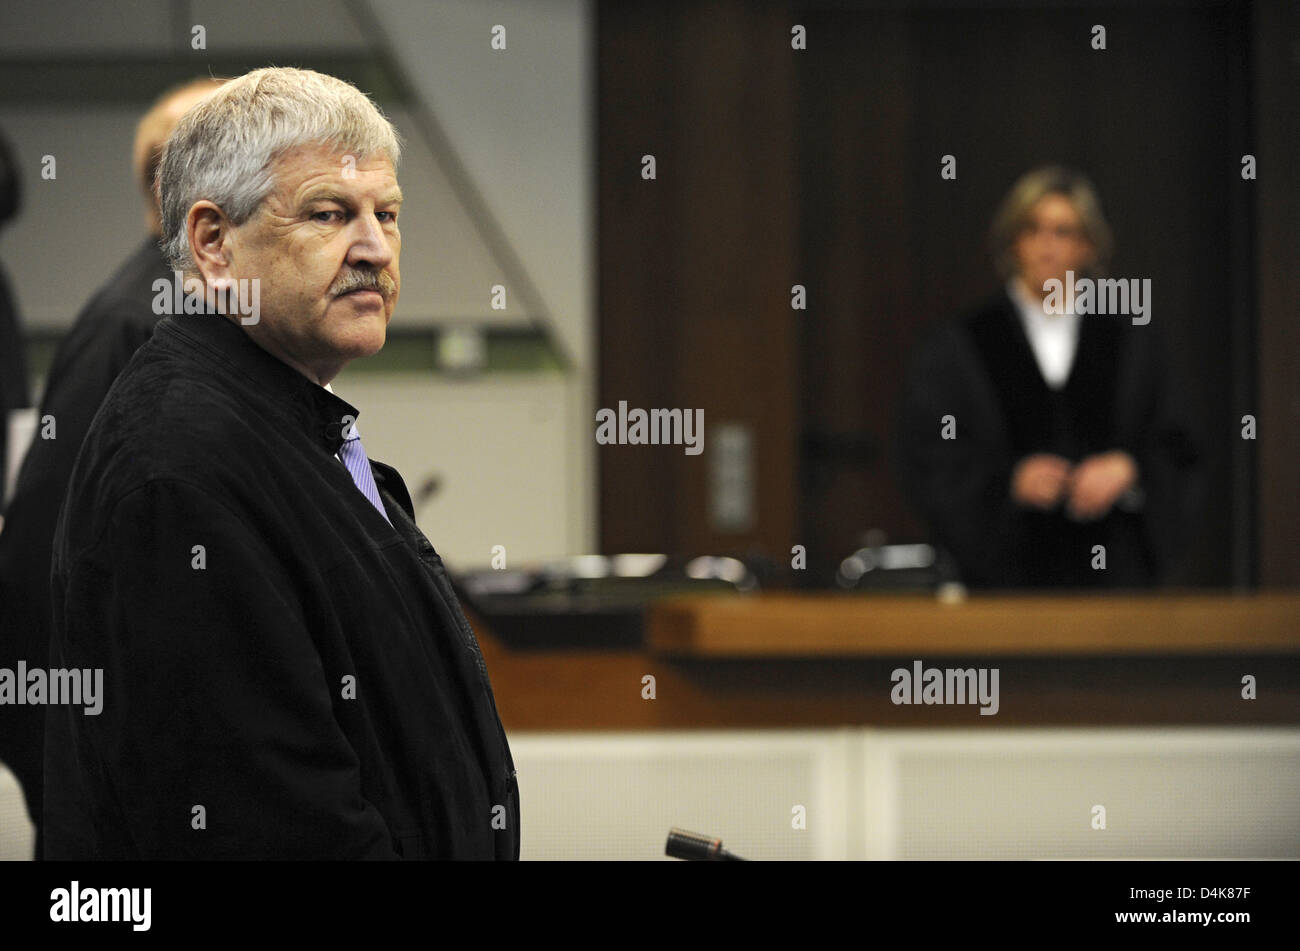 Udo Voigt, chairman of rightist extremist party NPD, pictured in court in Berlin, Germany, 07 April 2009. Voigt Stock Photo